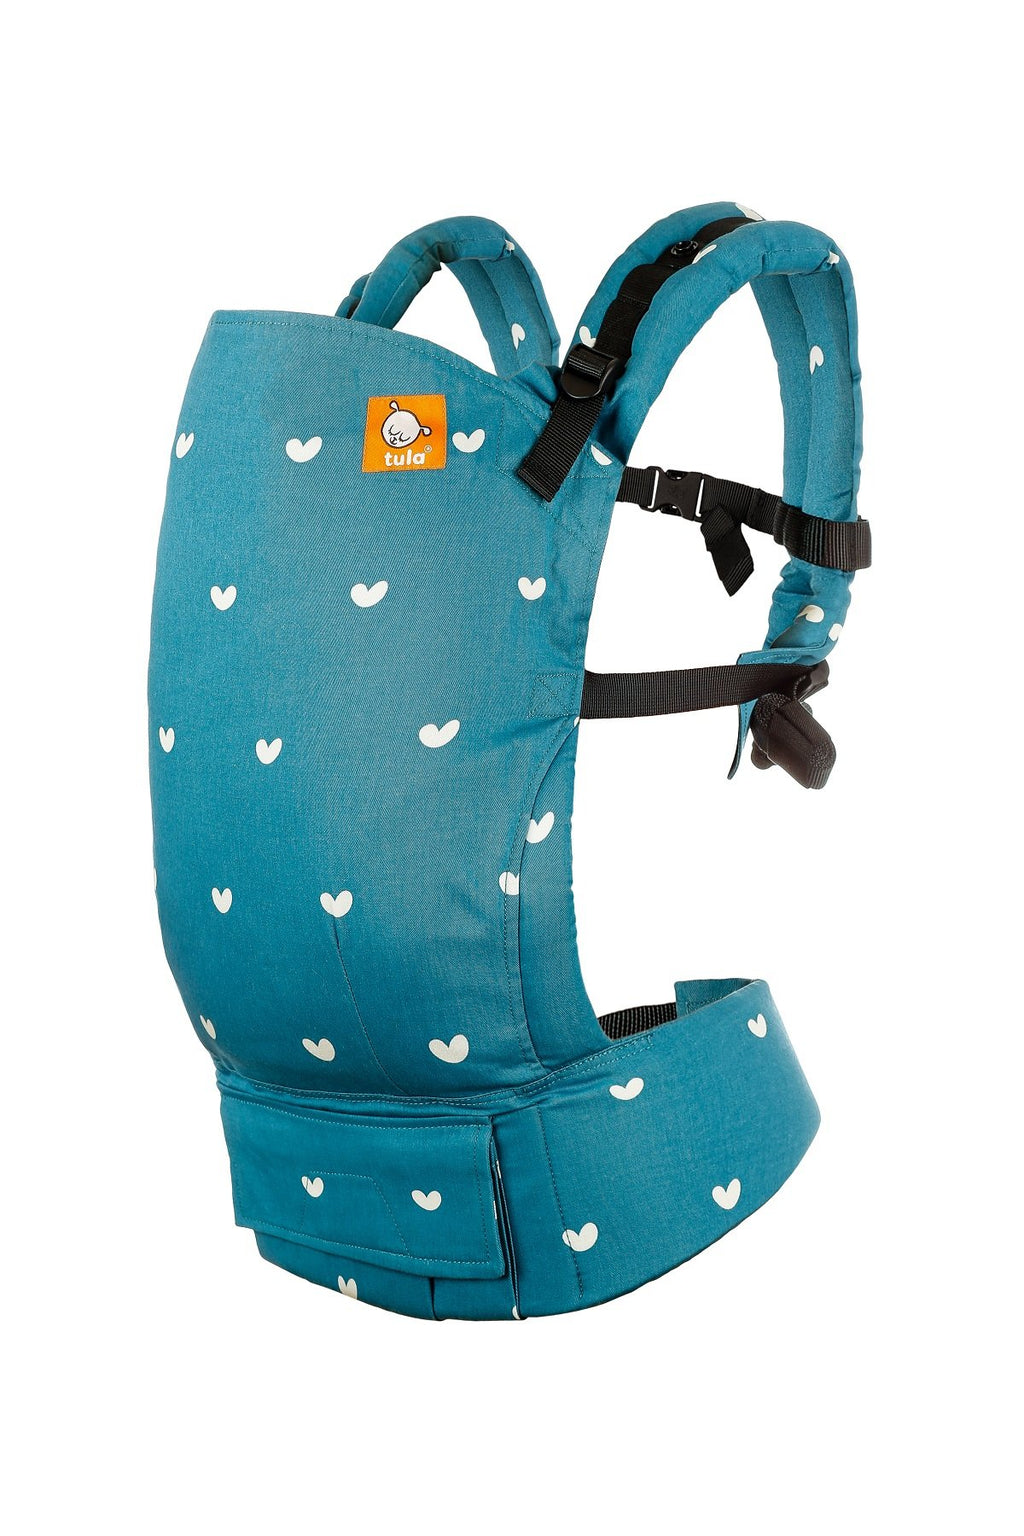 Playdate - Tula Standard Baby Carrier